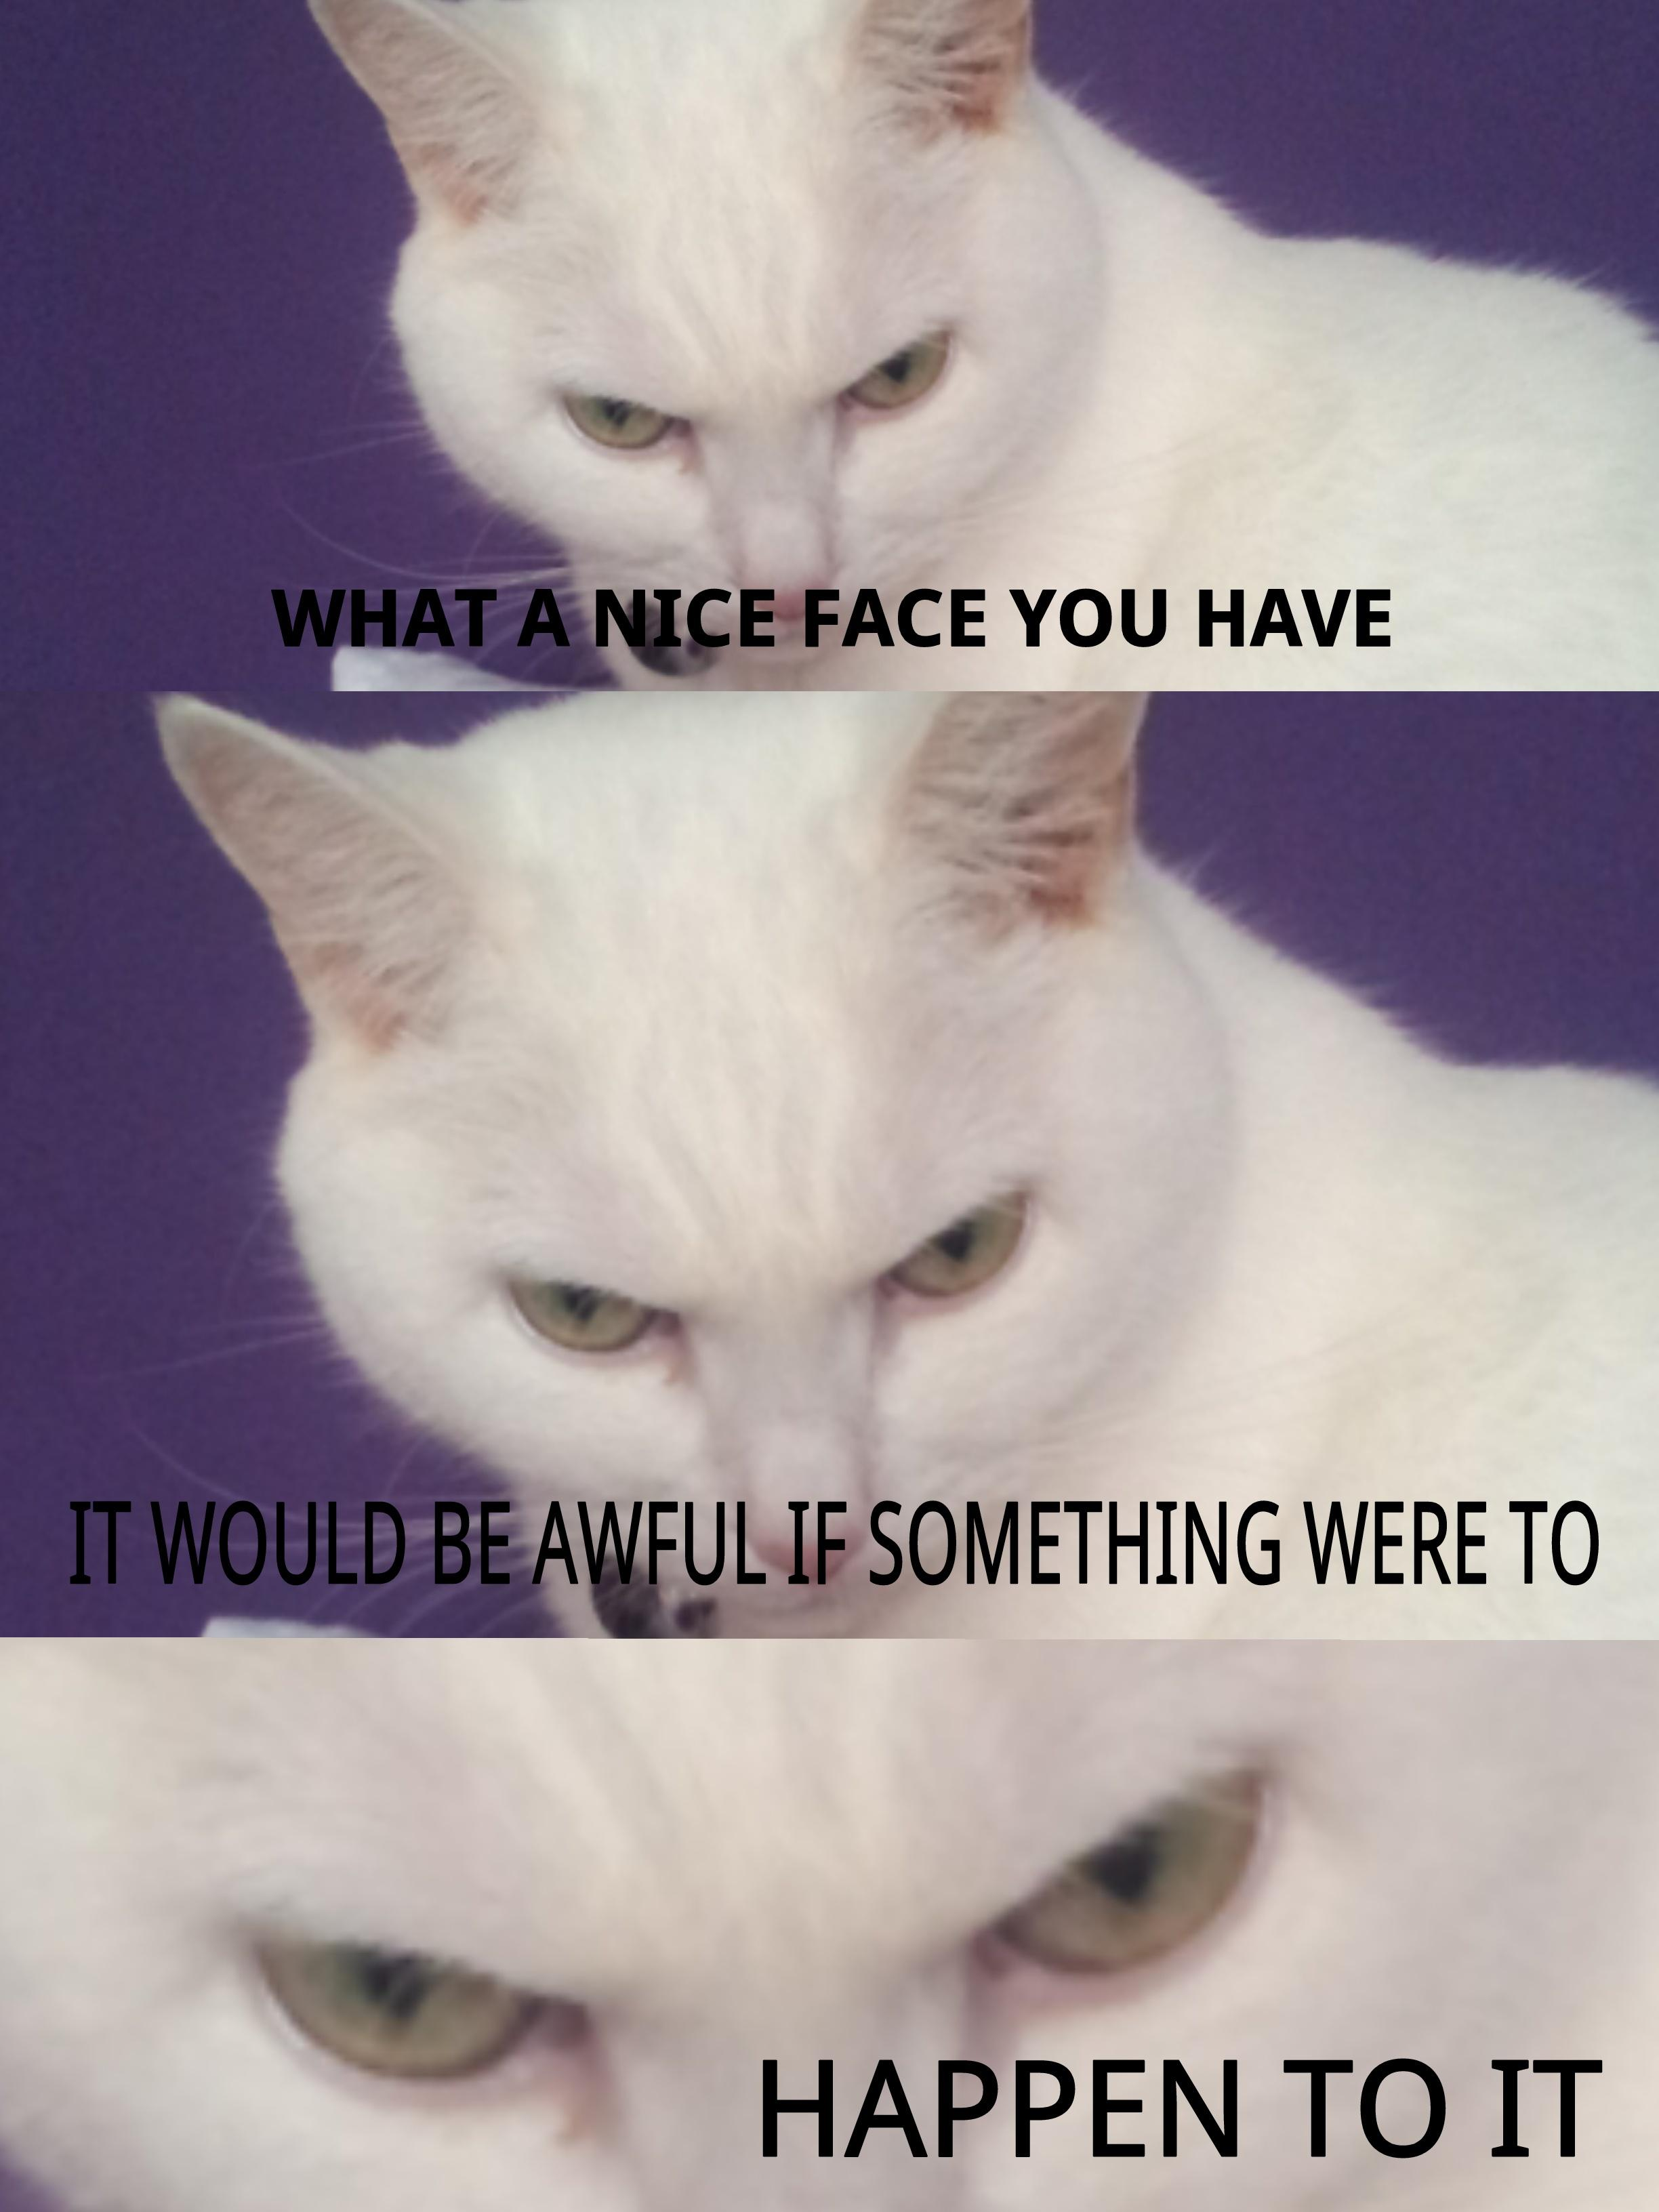 8f7 most recent cat memes 8f7 wallpaper